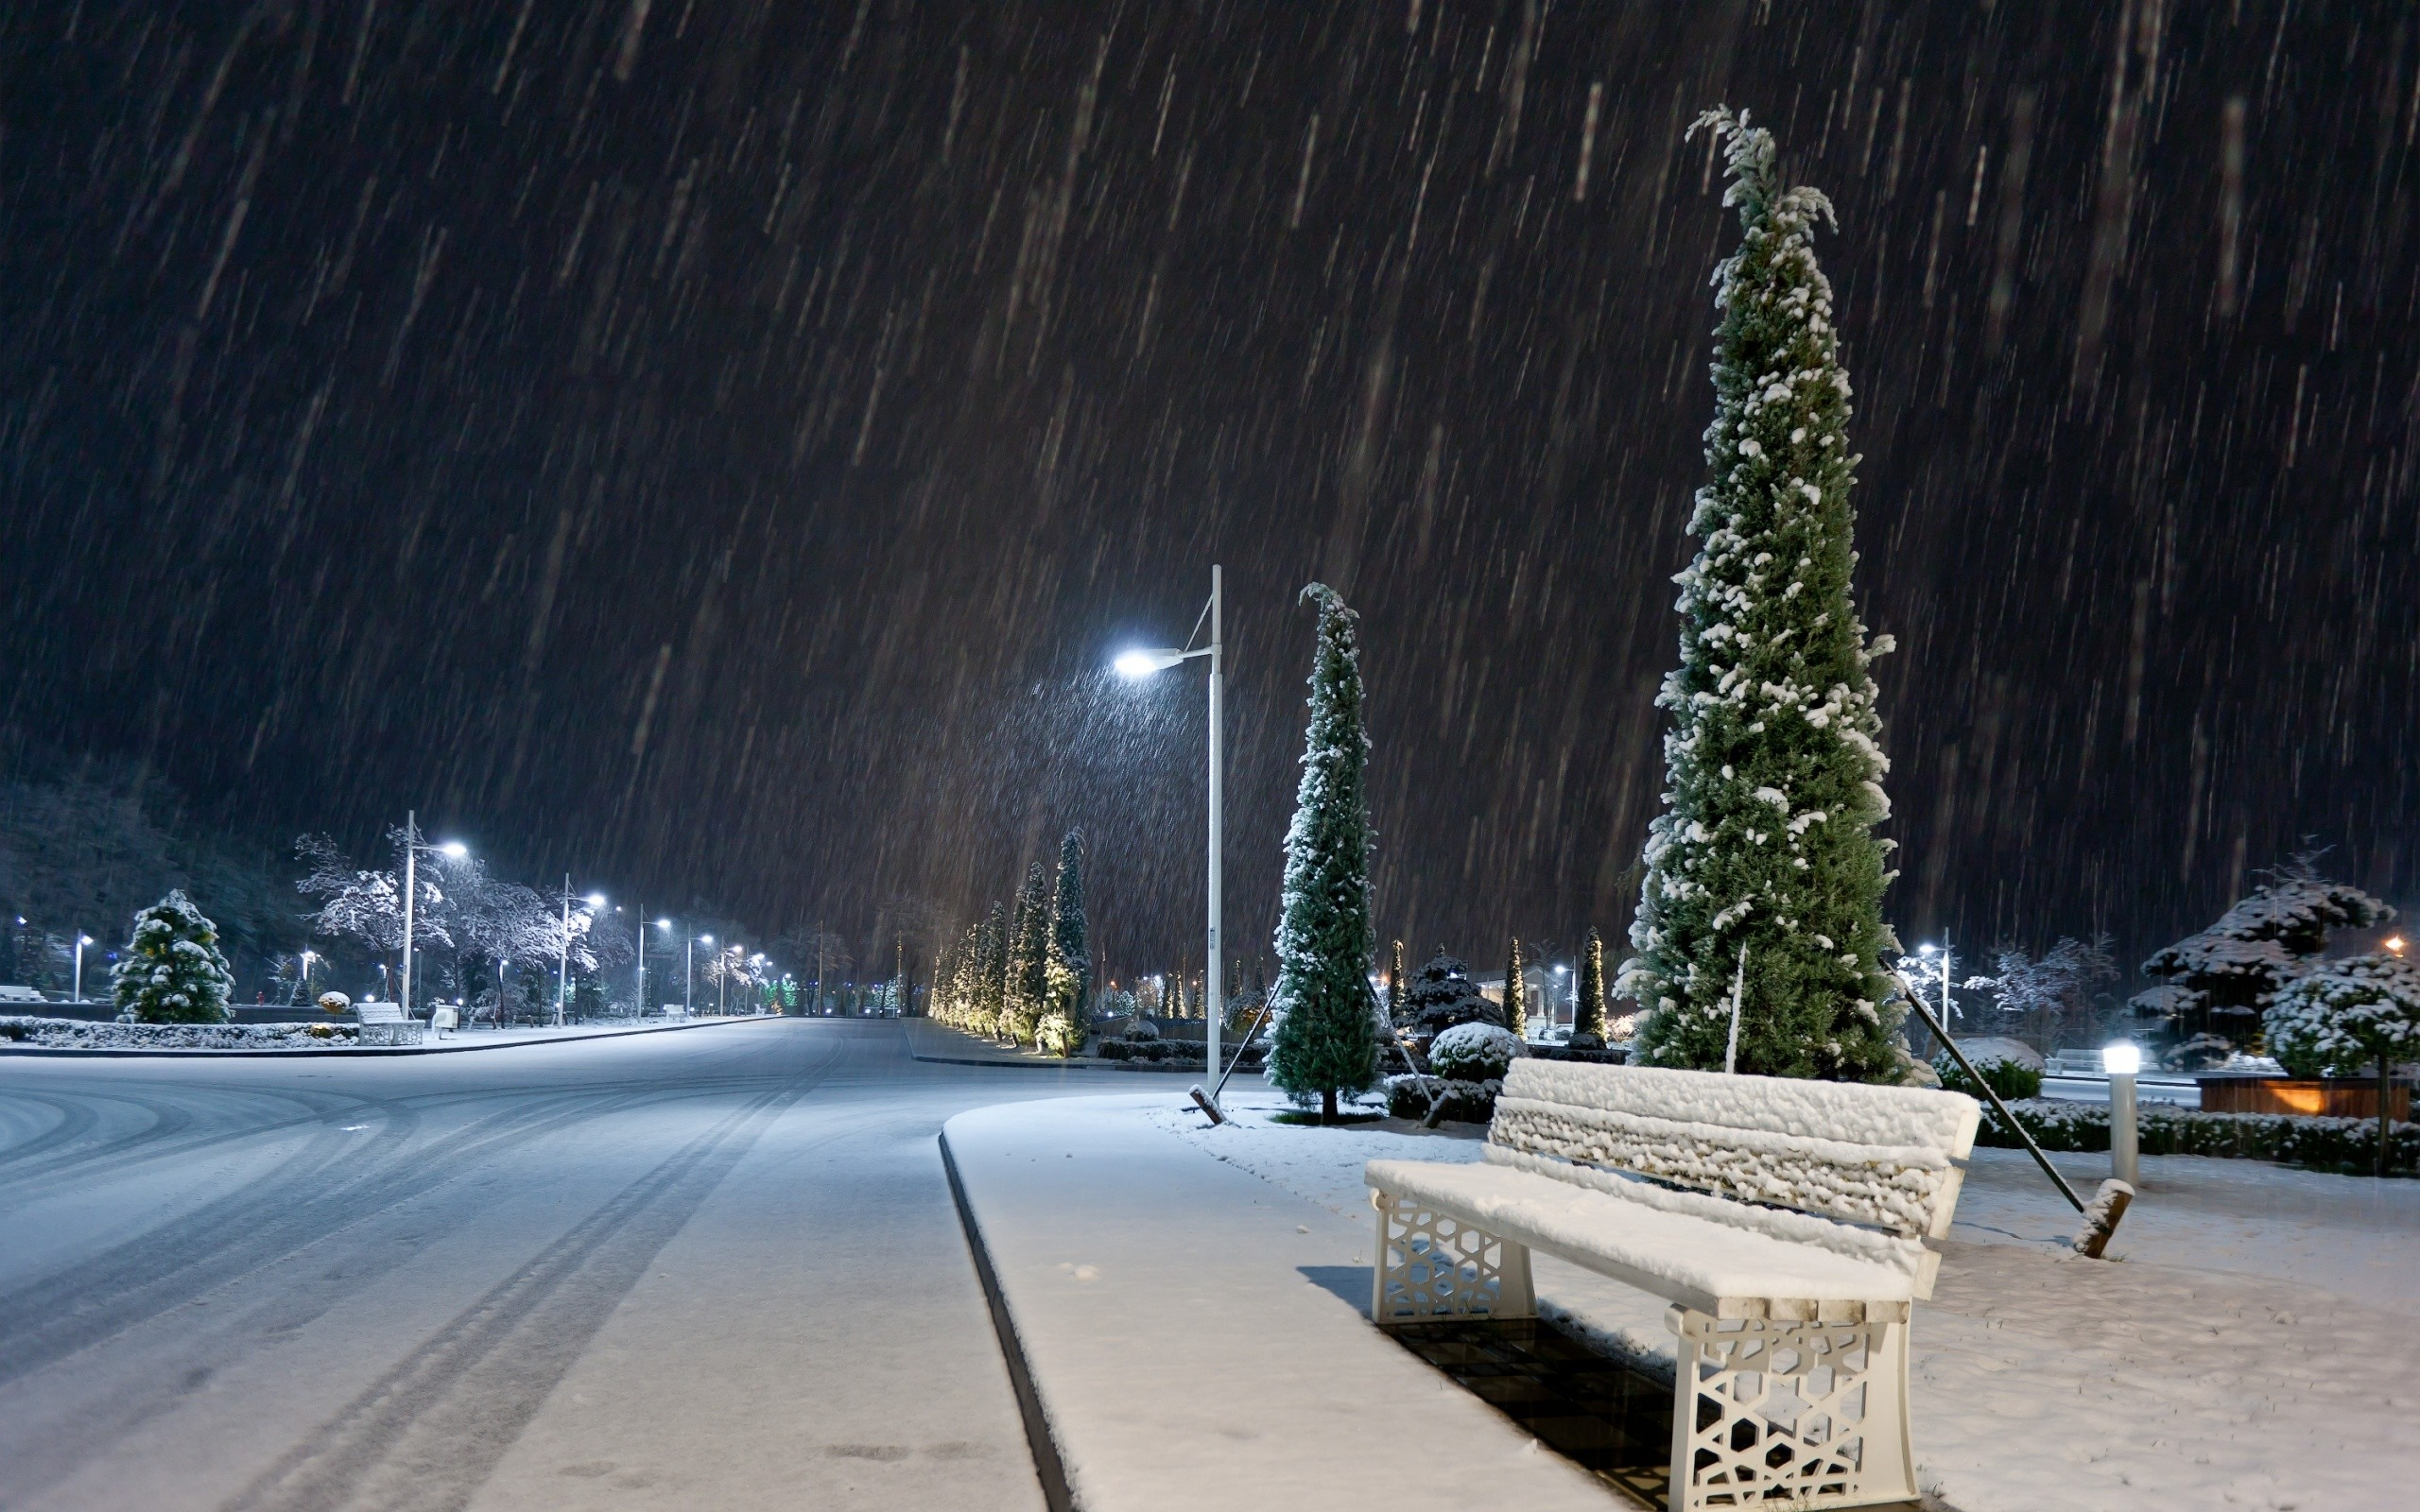 Night Snow Wallpaper Background 56 Images